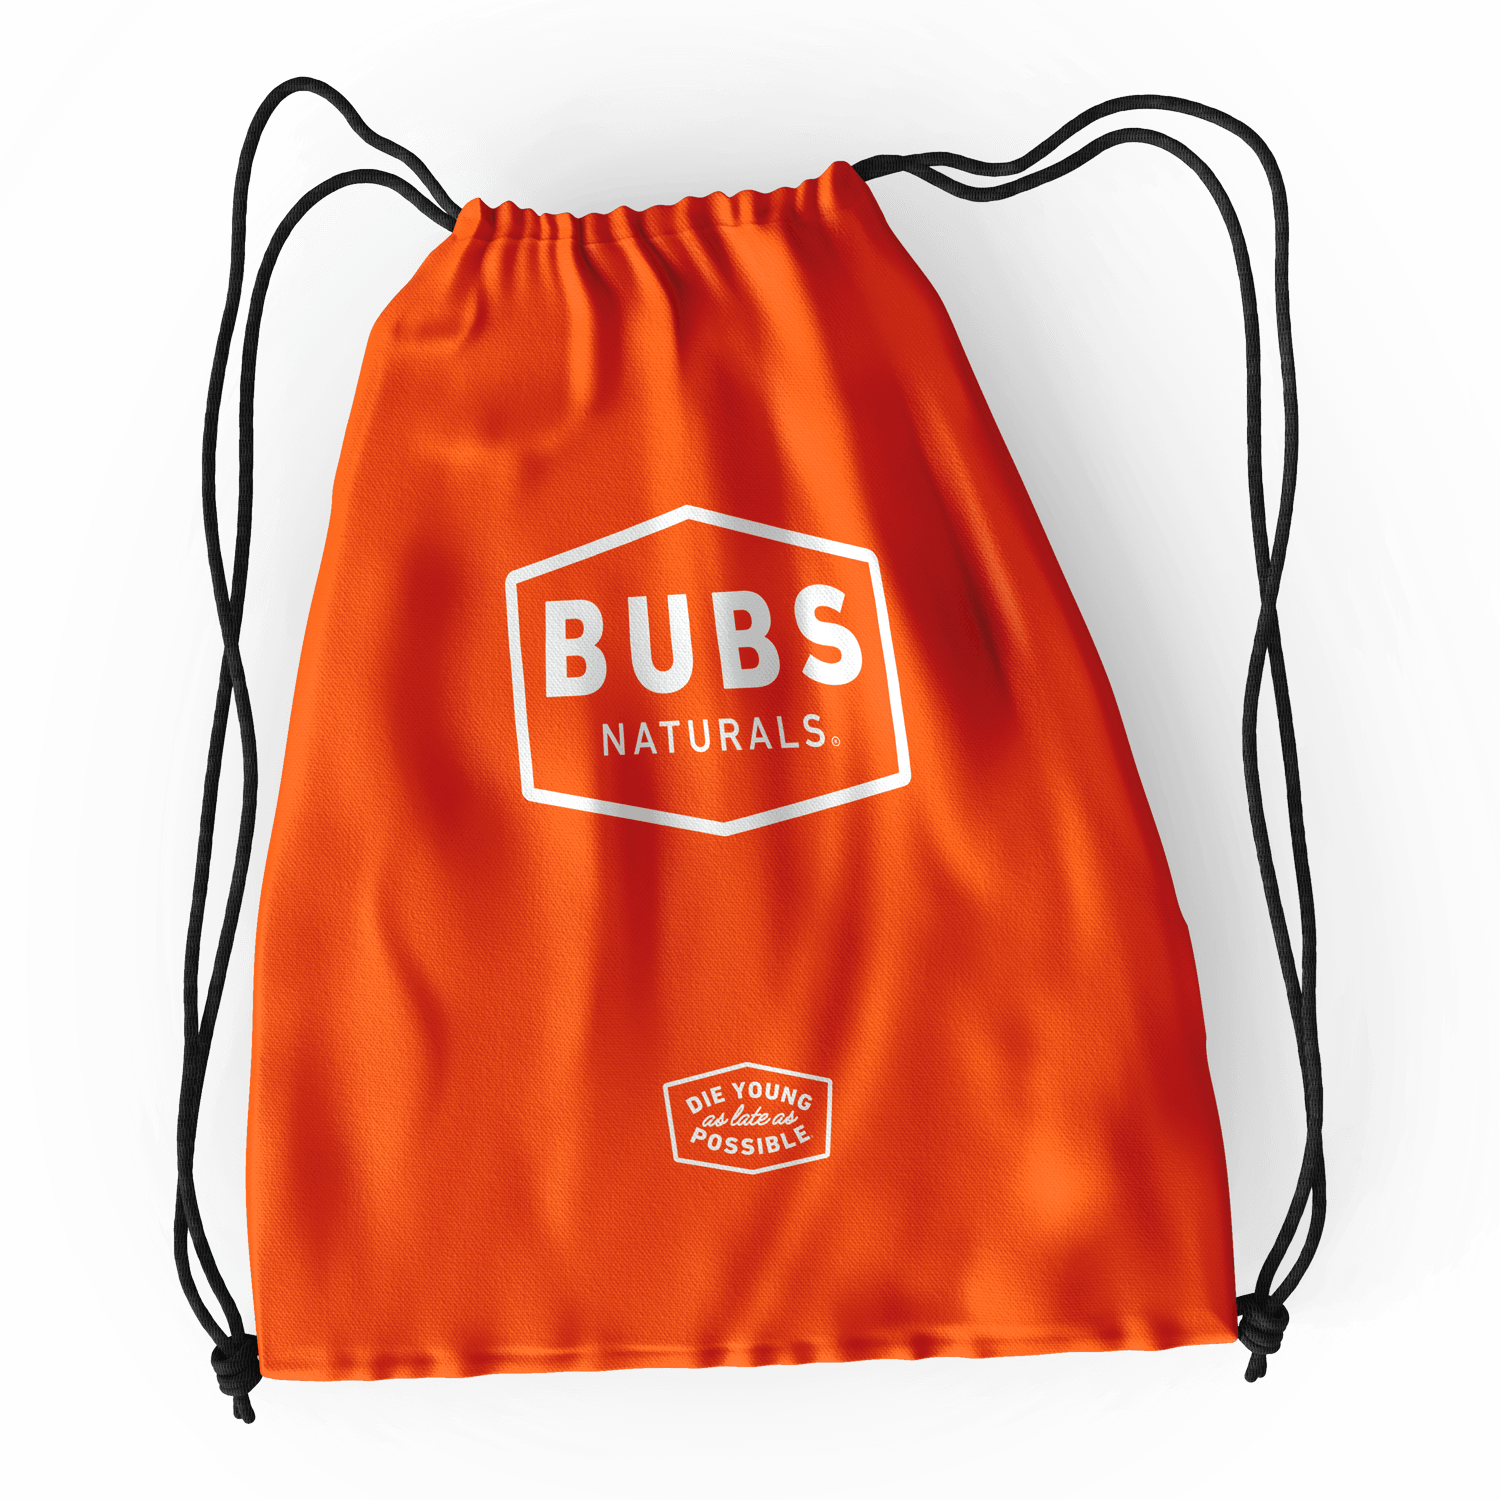 BUBS Naturals orange drawstring bag